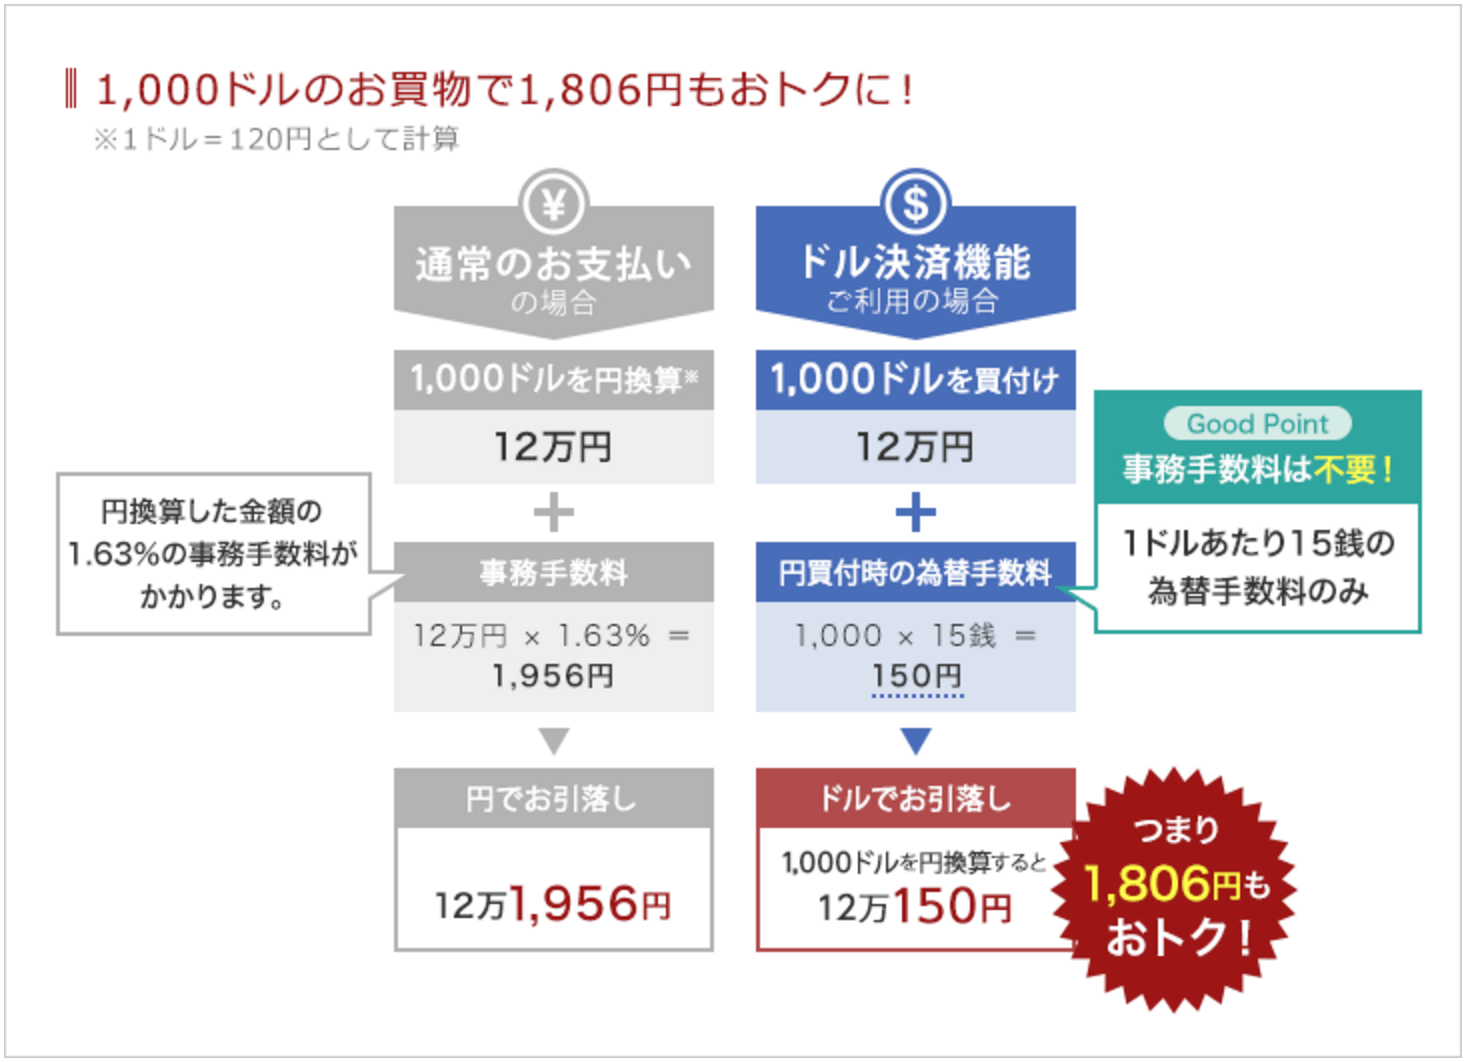 SBIカード ドル決済サービス 手数料